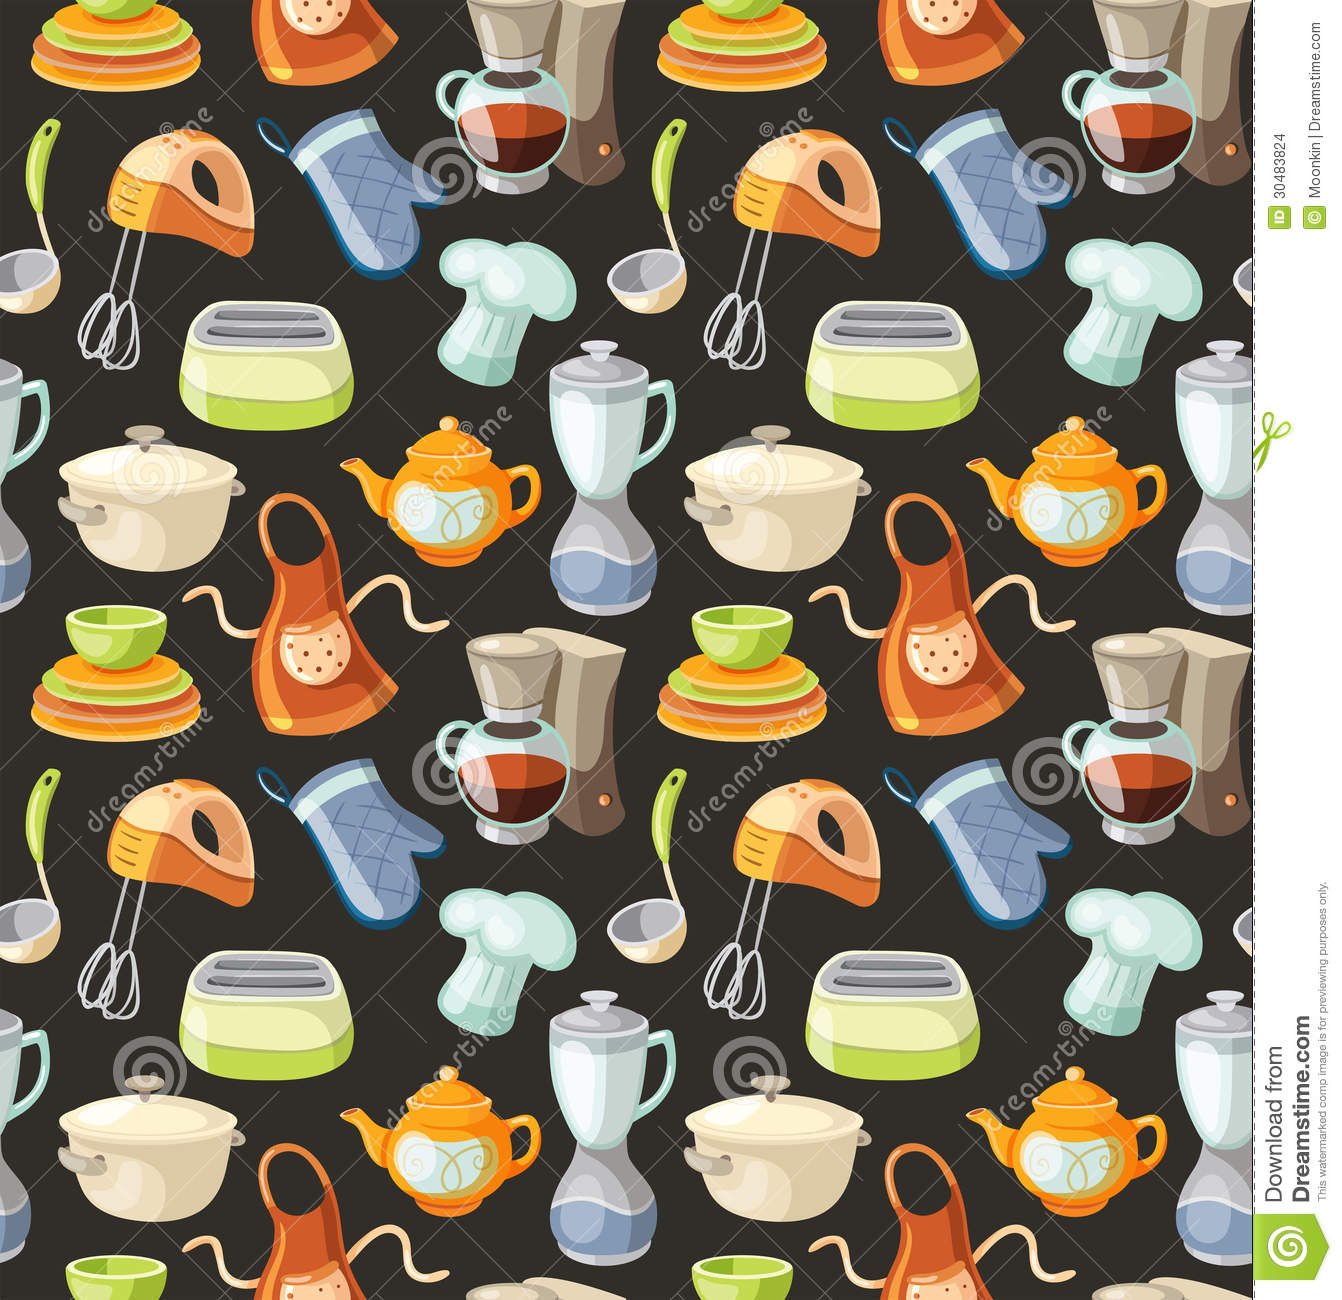 Kitchen Utensils Background: Seamless Pattern With Kitchen Tools And Cooking Icons